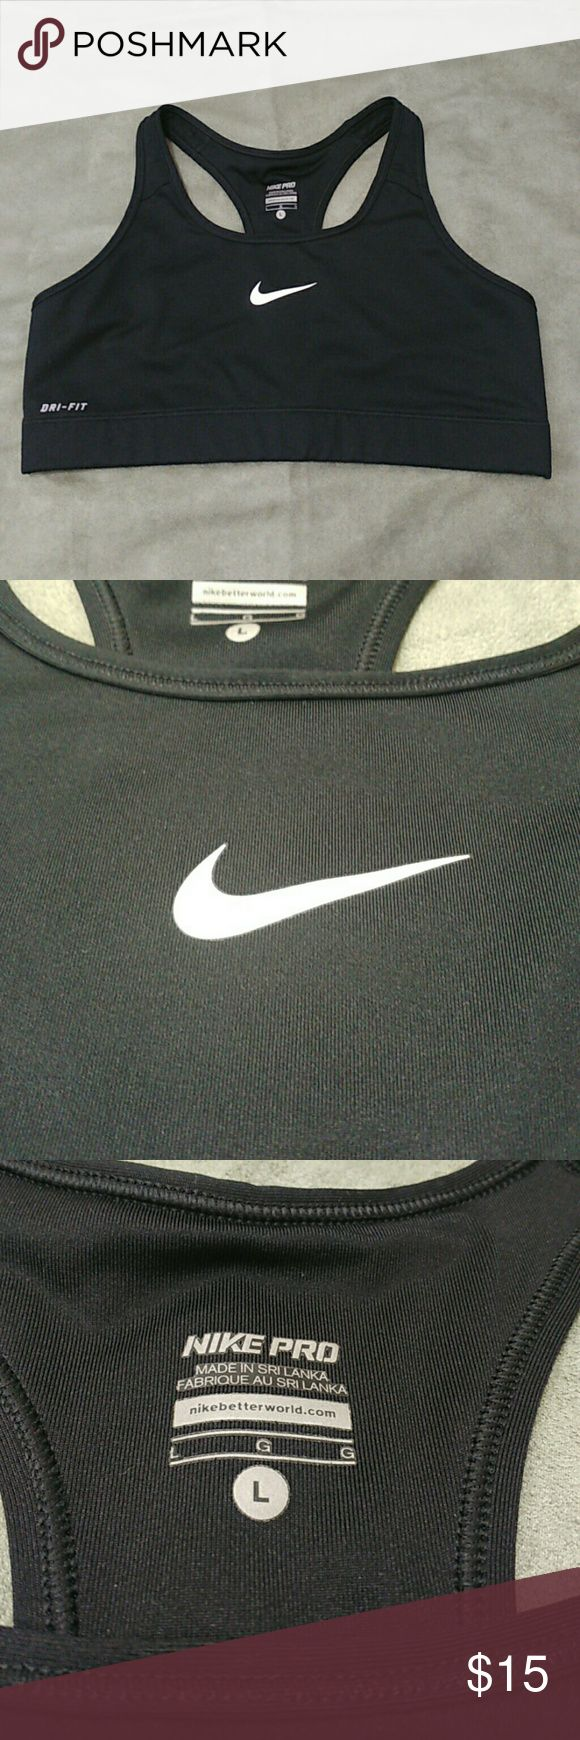 Nike  Dri Fit Workout Racer Back Bra All black  Nike Dri Fit bra . Racer back style, with Nike logs in the front center with light crack and DRI fit label on the lower right side of top Nike Intimates & Sleepwear Bras